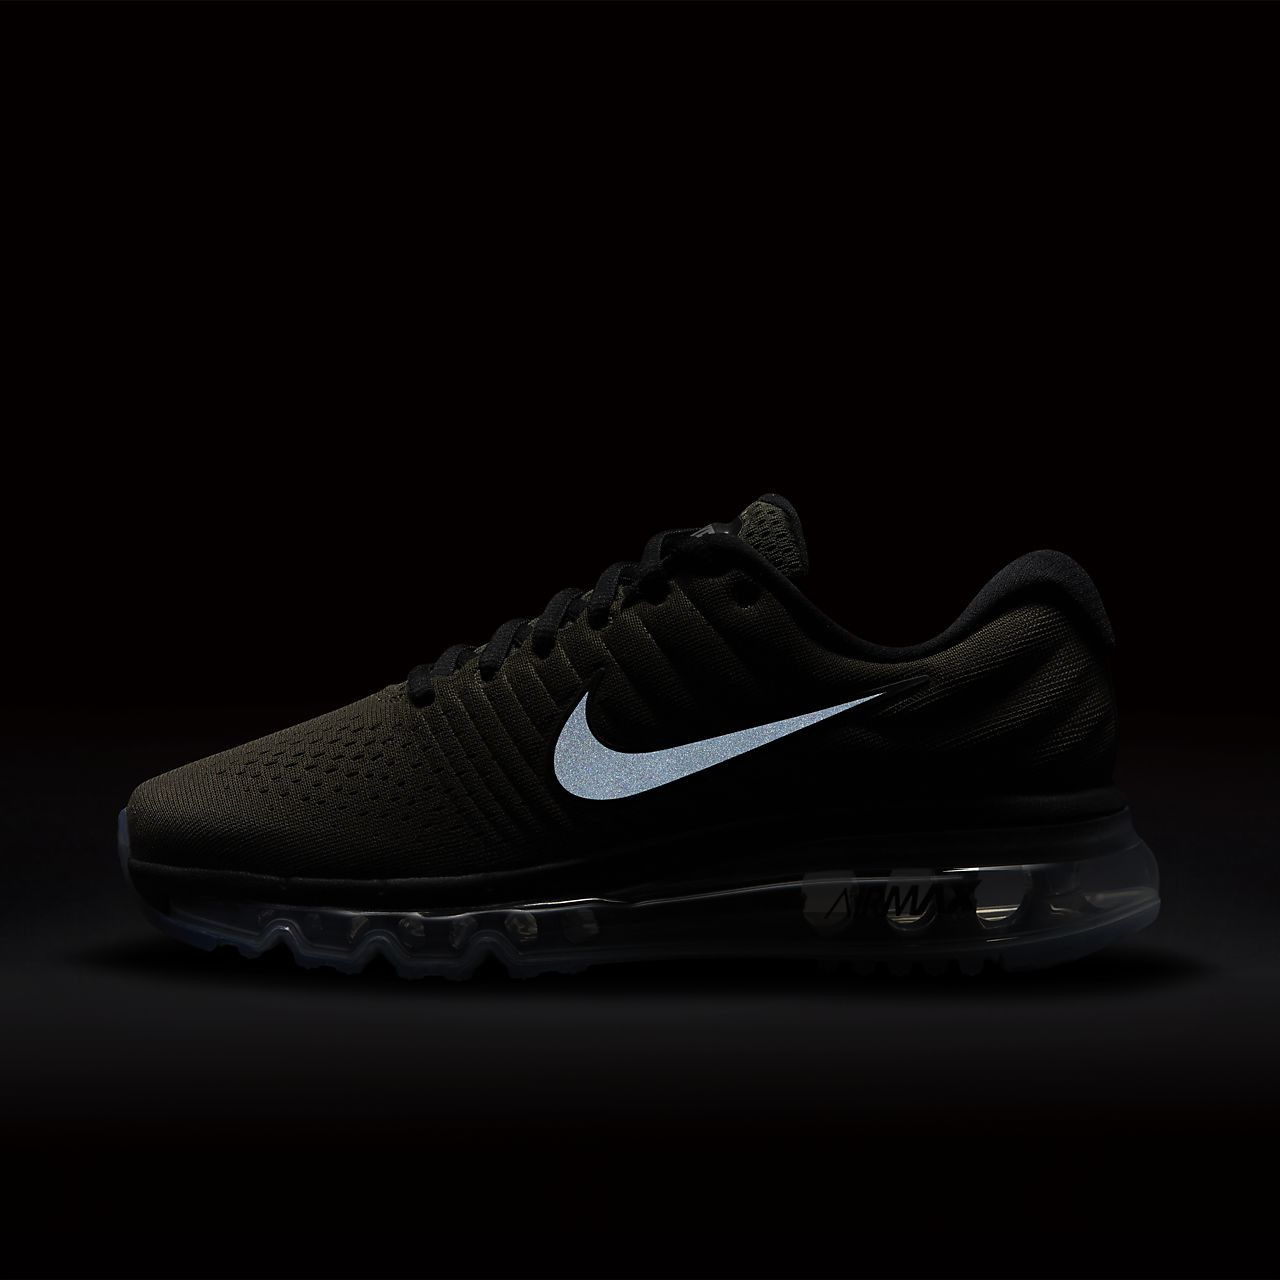 nike air max 2017 black anthracite nz